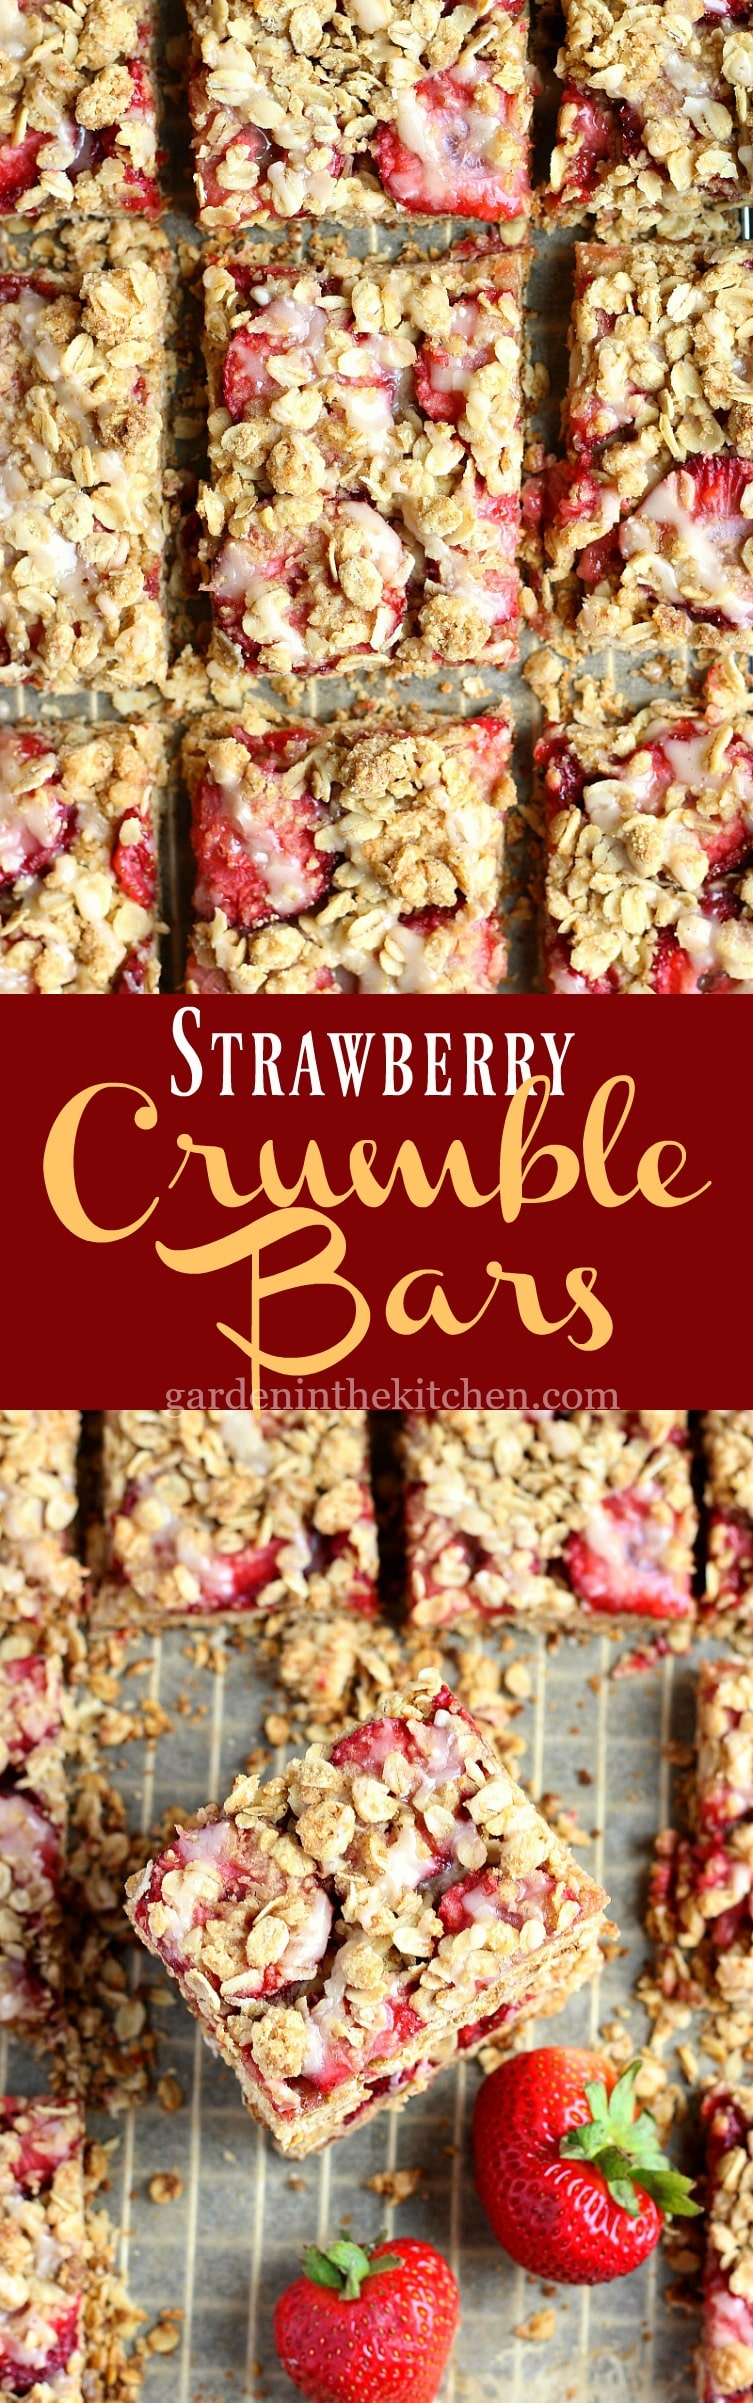 Strawberry Crumble Bars | Garden in the Kitchen